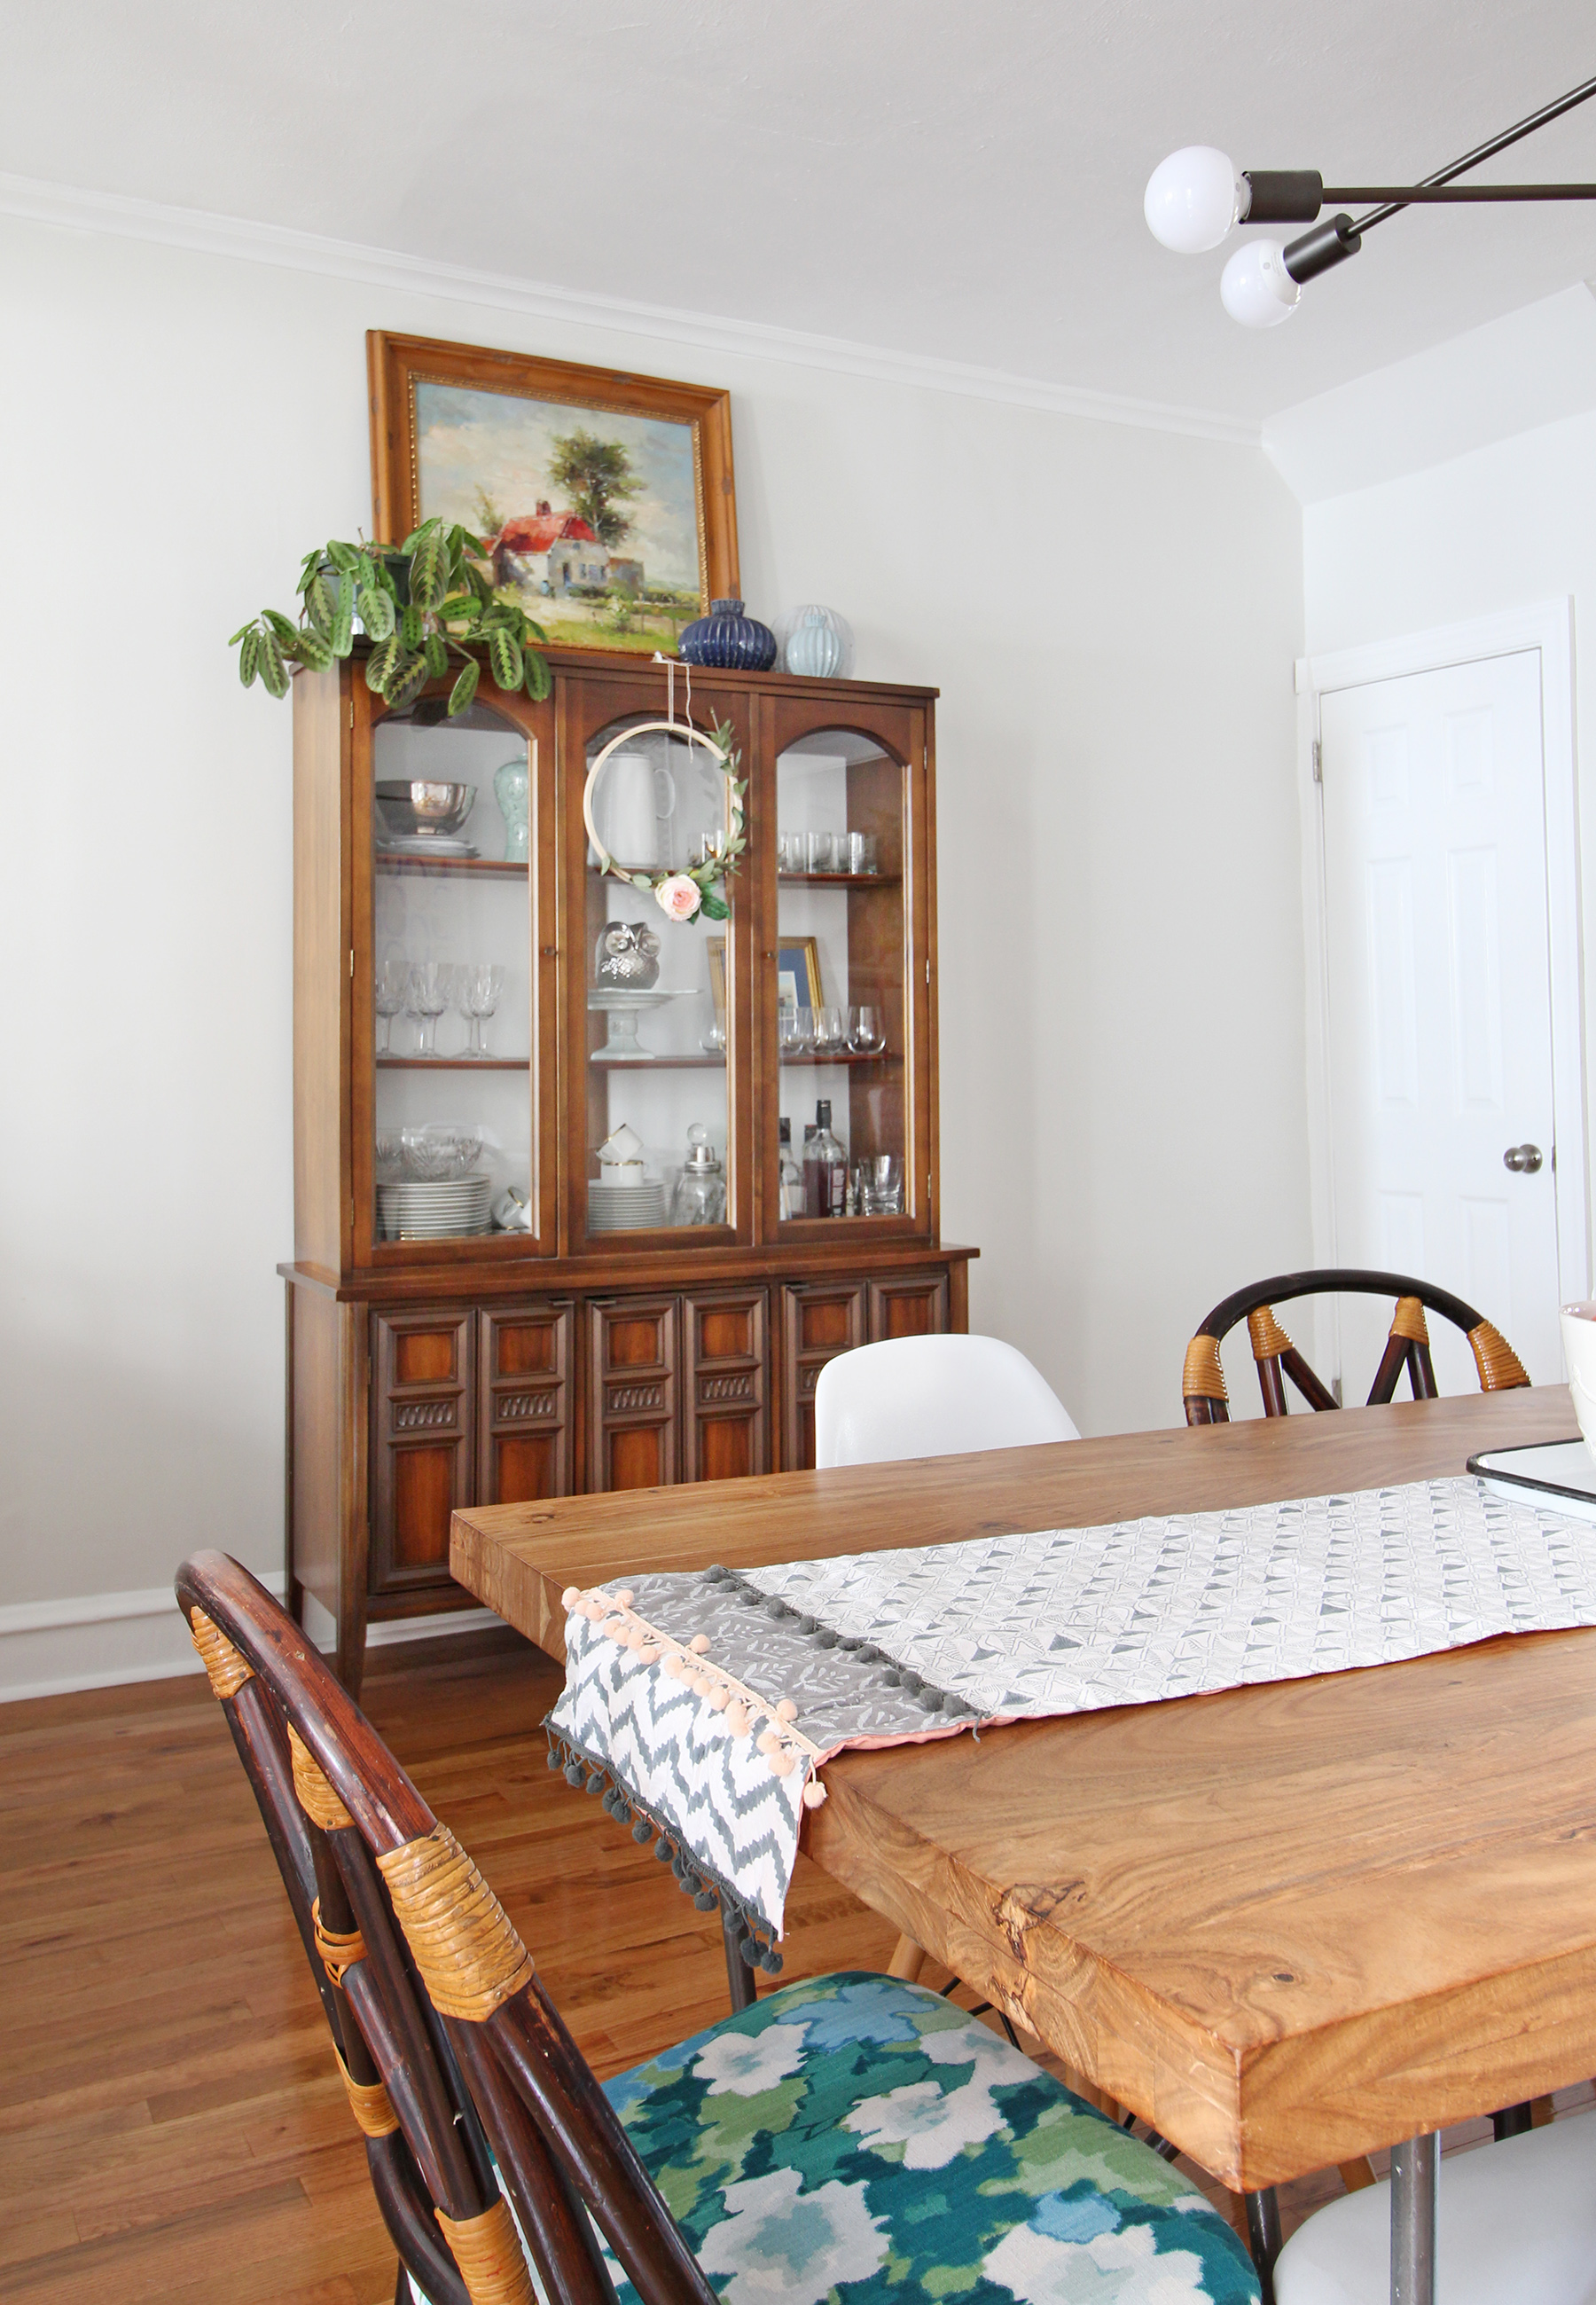 A 1930s row home in Philadelphia gets a big makeover. Come see the before and after of this home's living, dining, and kitchen open floor plan and get ideas for small space city living. Chaney's style is mid-century modern meets traditional that makes for an eclectic, cozy space. A dining table for 8 and a mid-century storage cabinet complete the dining area.